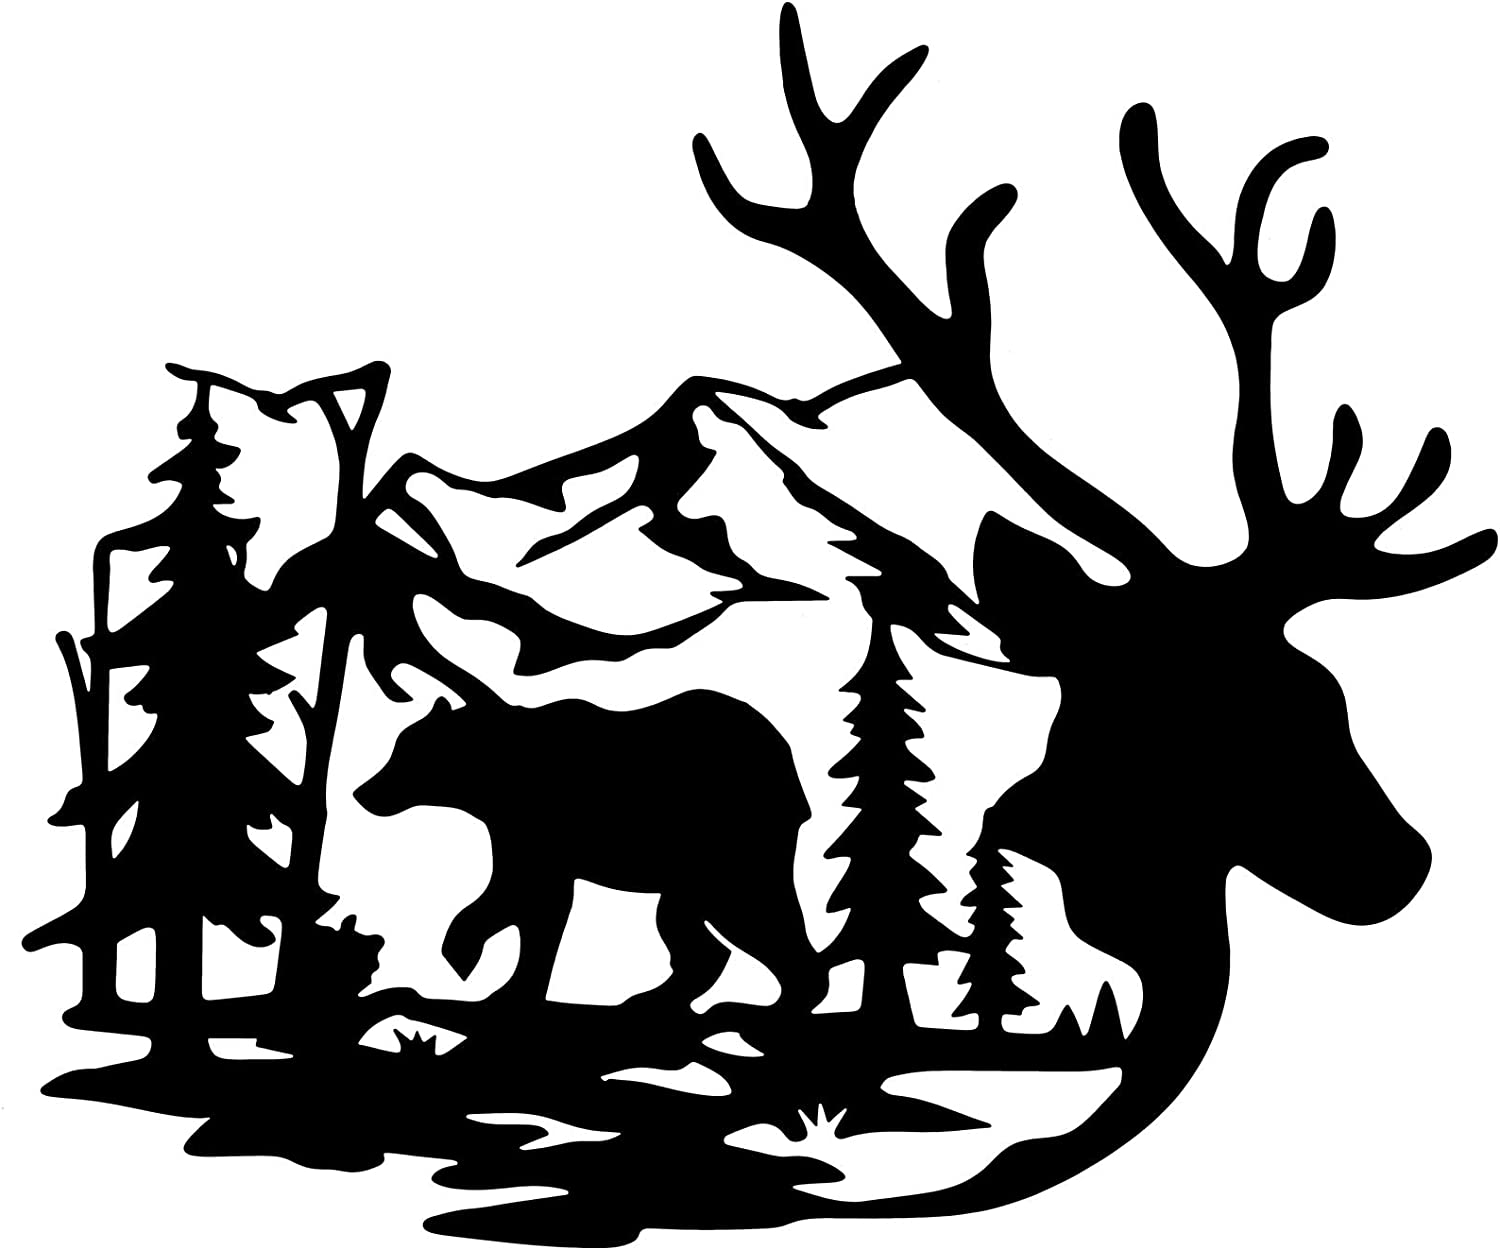 Deer Bear in the Forest Pine Tree Wall Decor Deer Bear Metal Hanging Wall Art for Living Room Bedroom Office Kitchen Decorations, 10 x 8.6 Inch